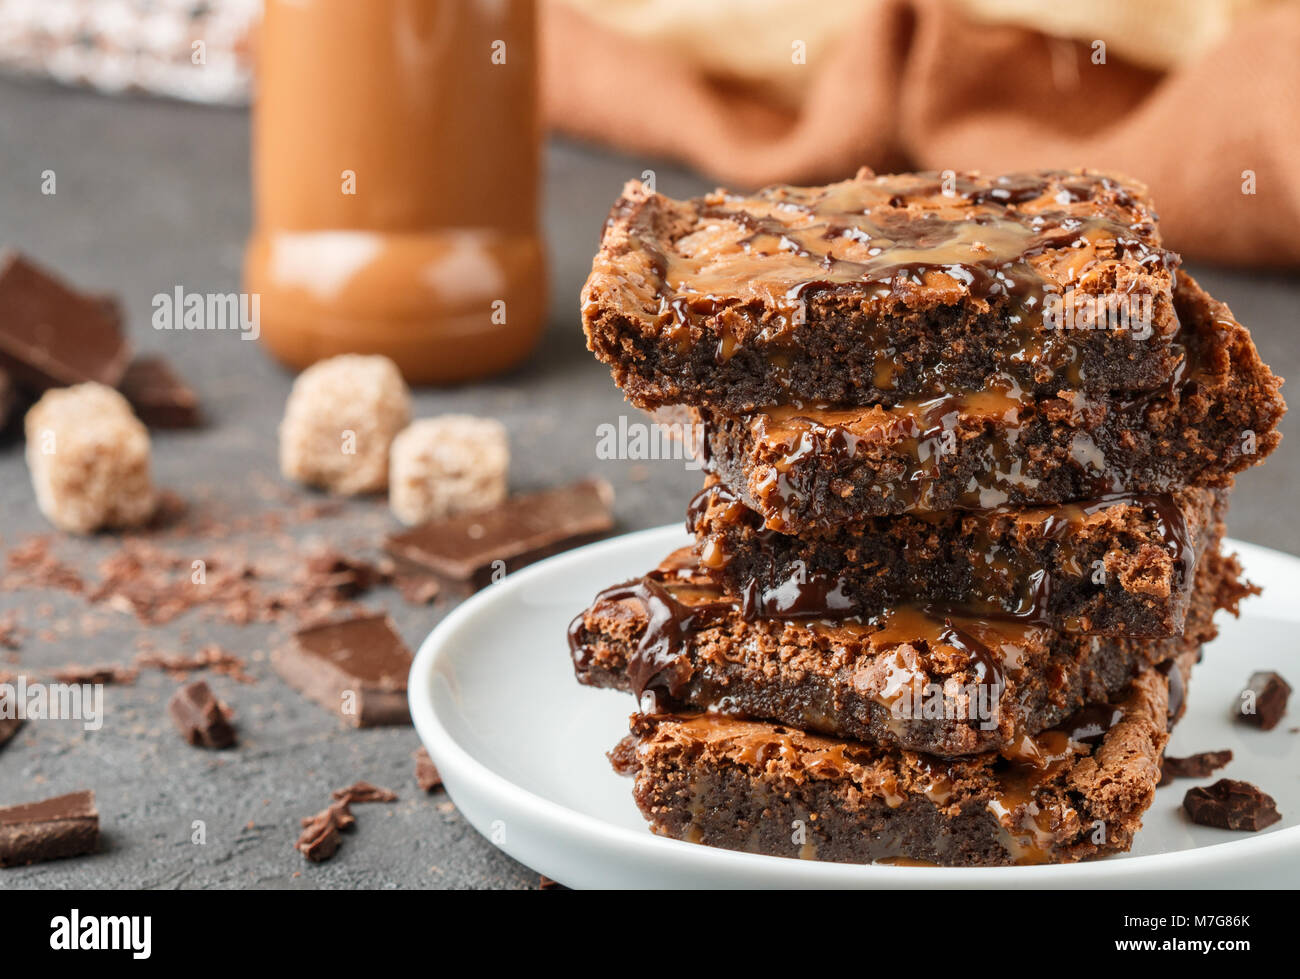 Brownie. Homemade cake with chocolate and caramel. American dessert. Selective focus - Stock Image